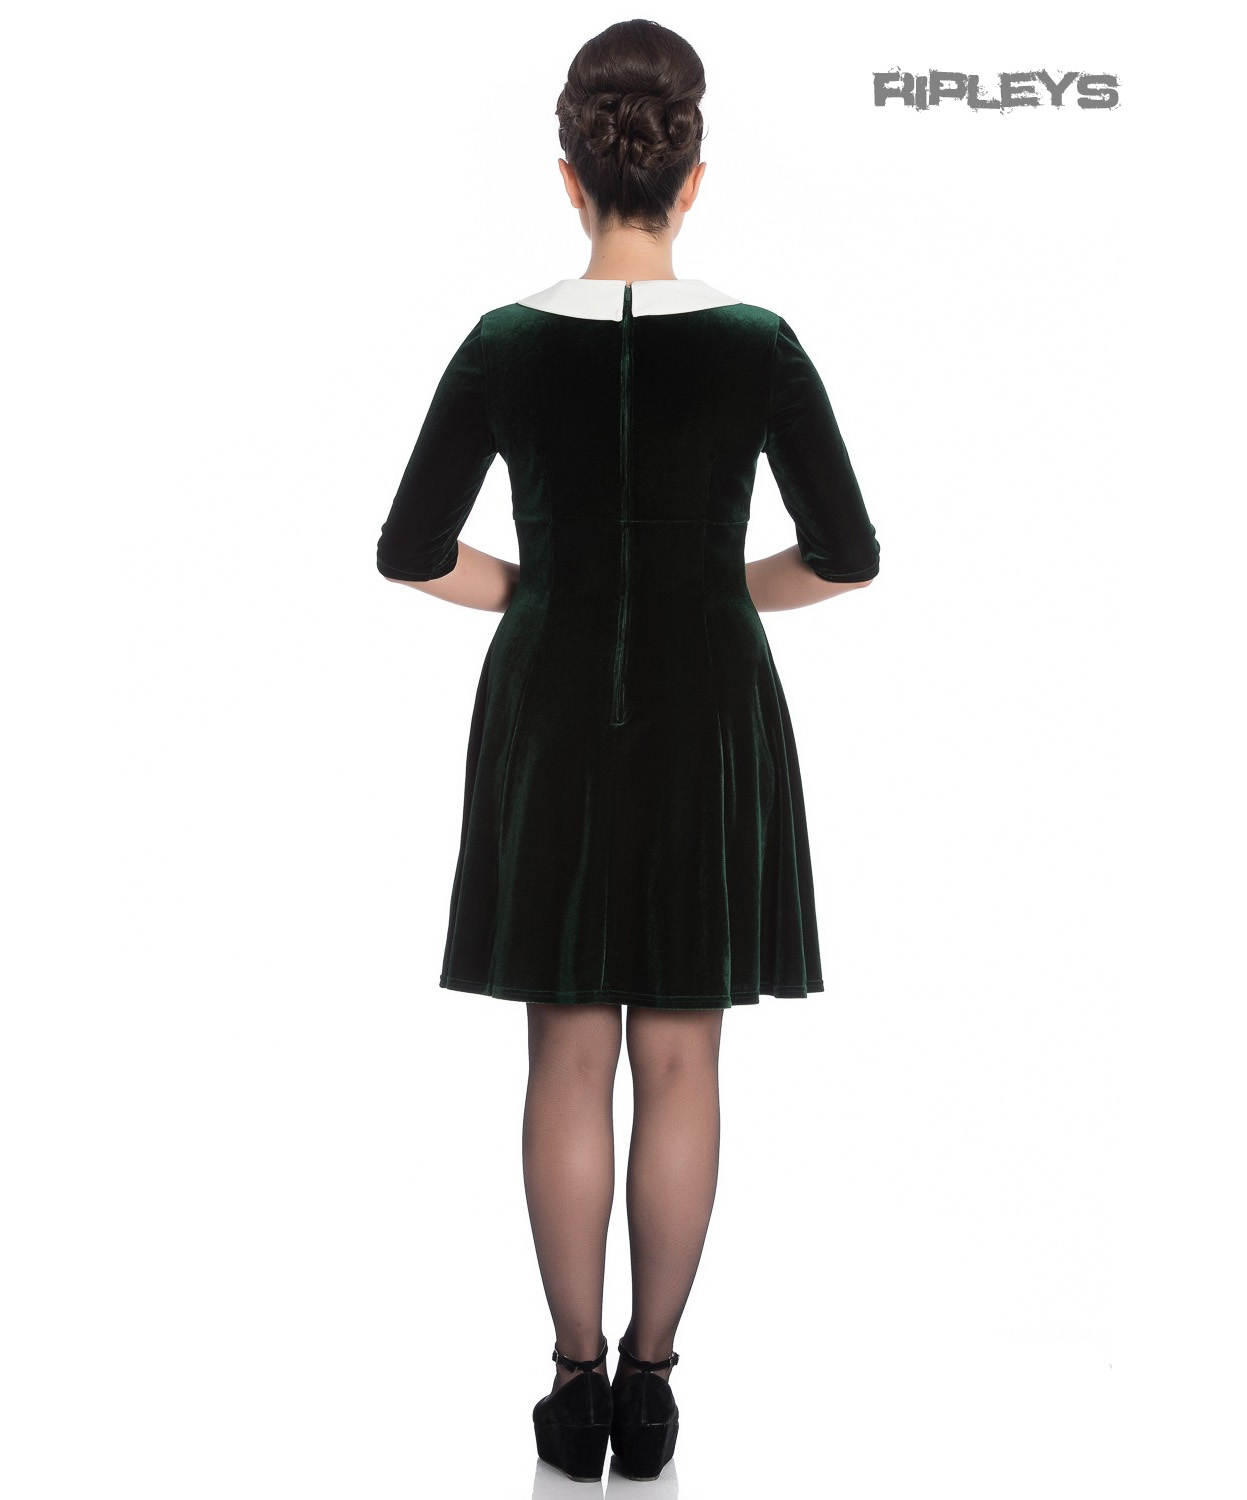 Hell-Bunny-Mini-Skater-Dress-Festive-Christmas-MERRILY-Green-Velvet-All-Sizes thumbnail 9